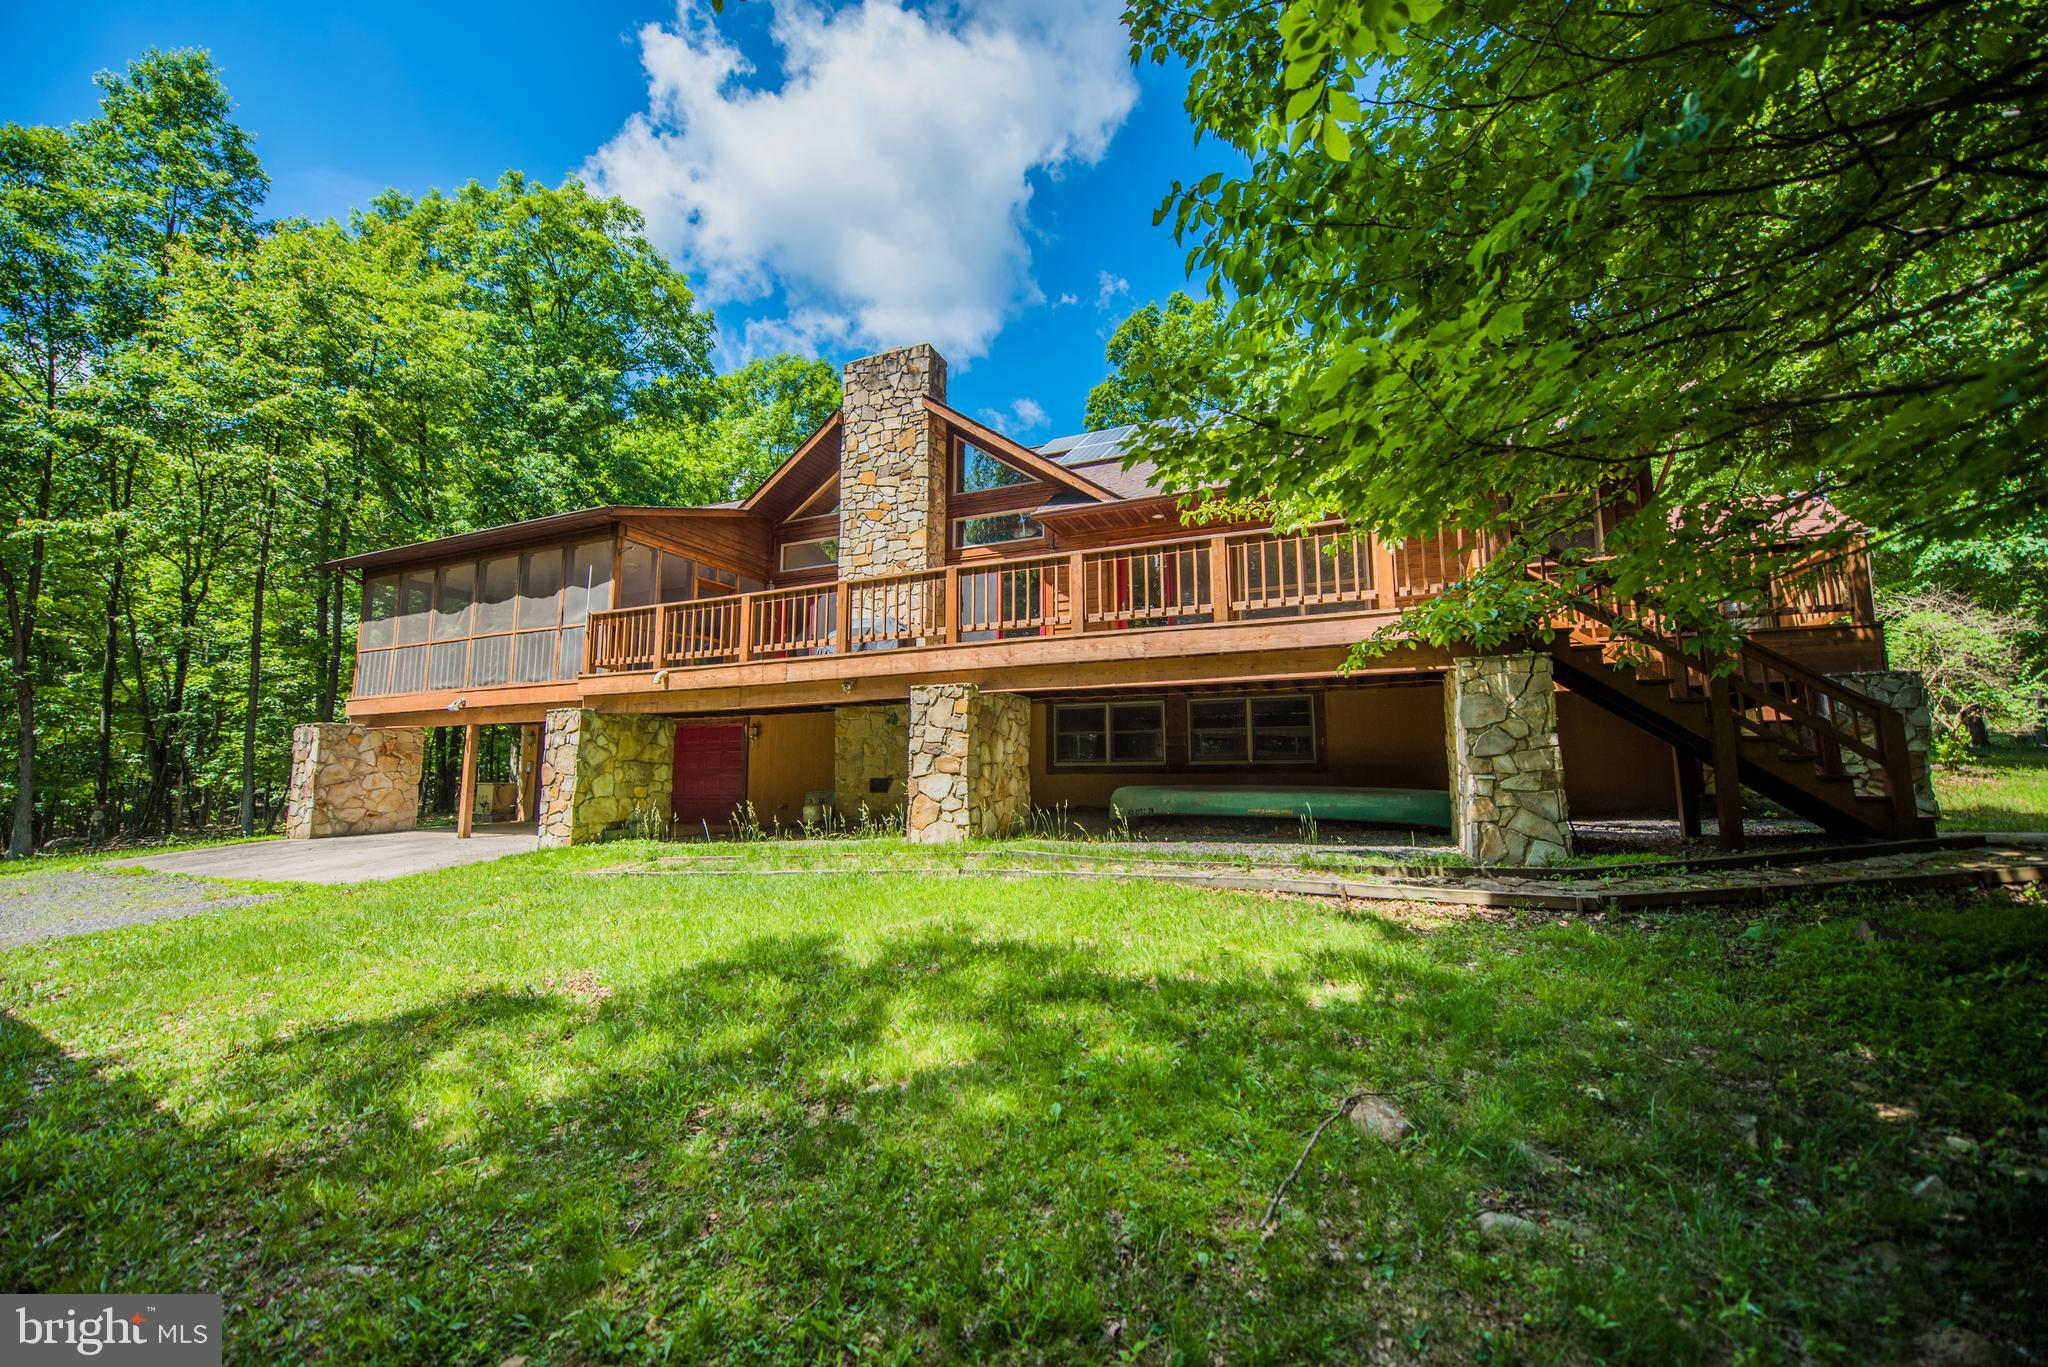 480 WILD APPLE LANE, BLOOMERY, WV 26817